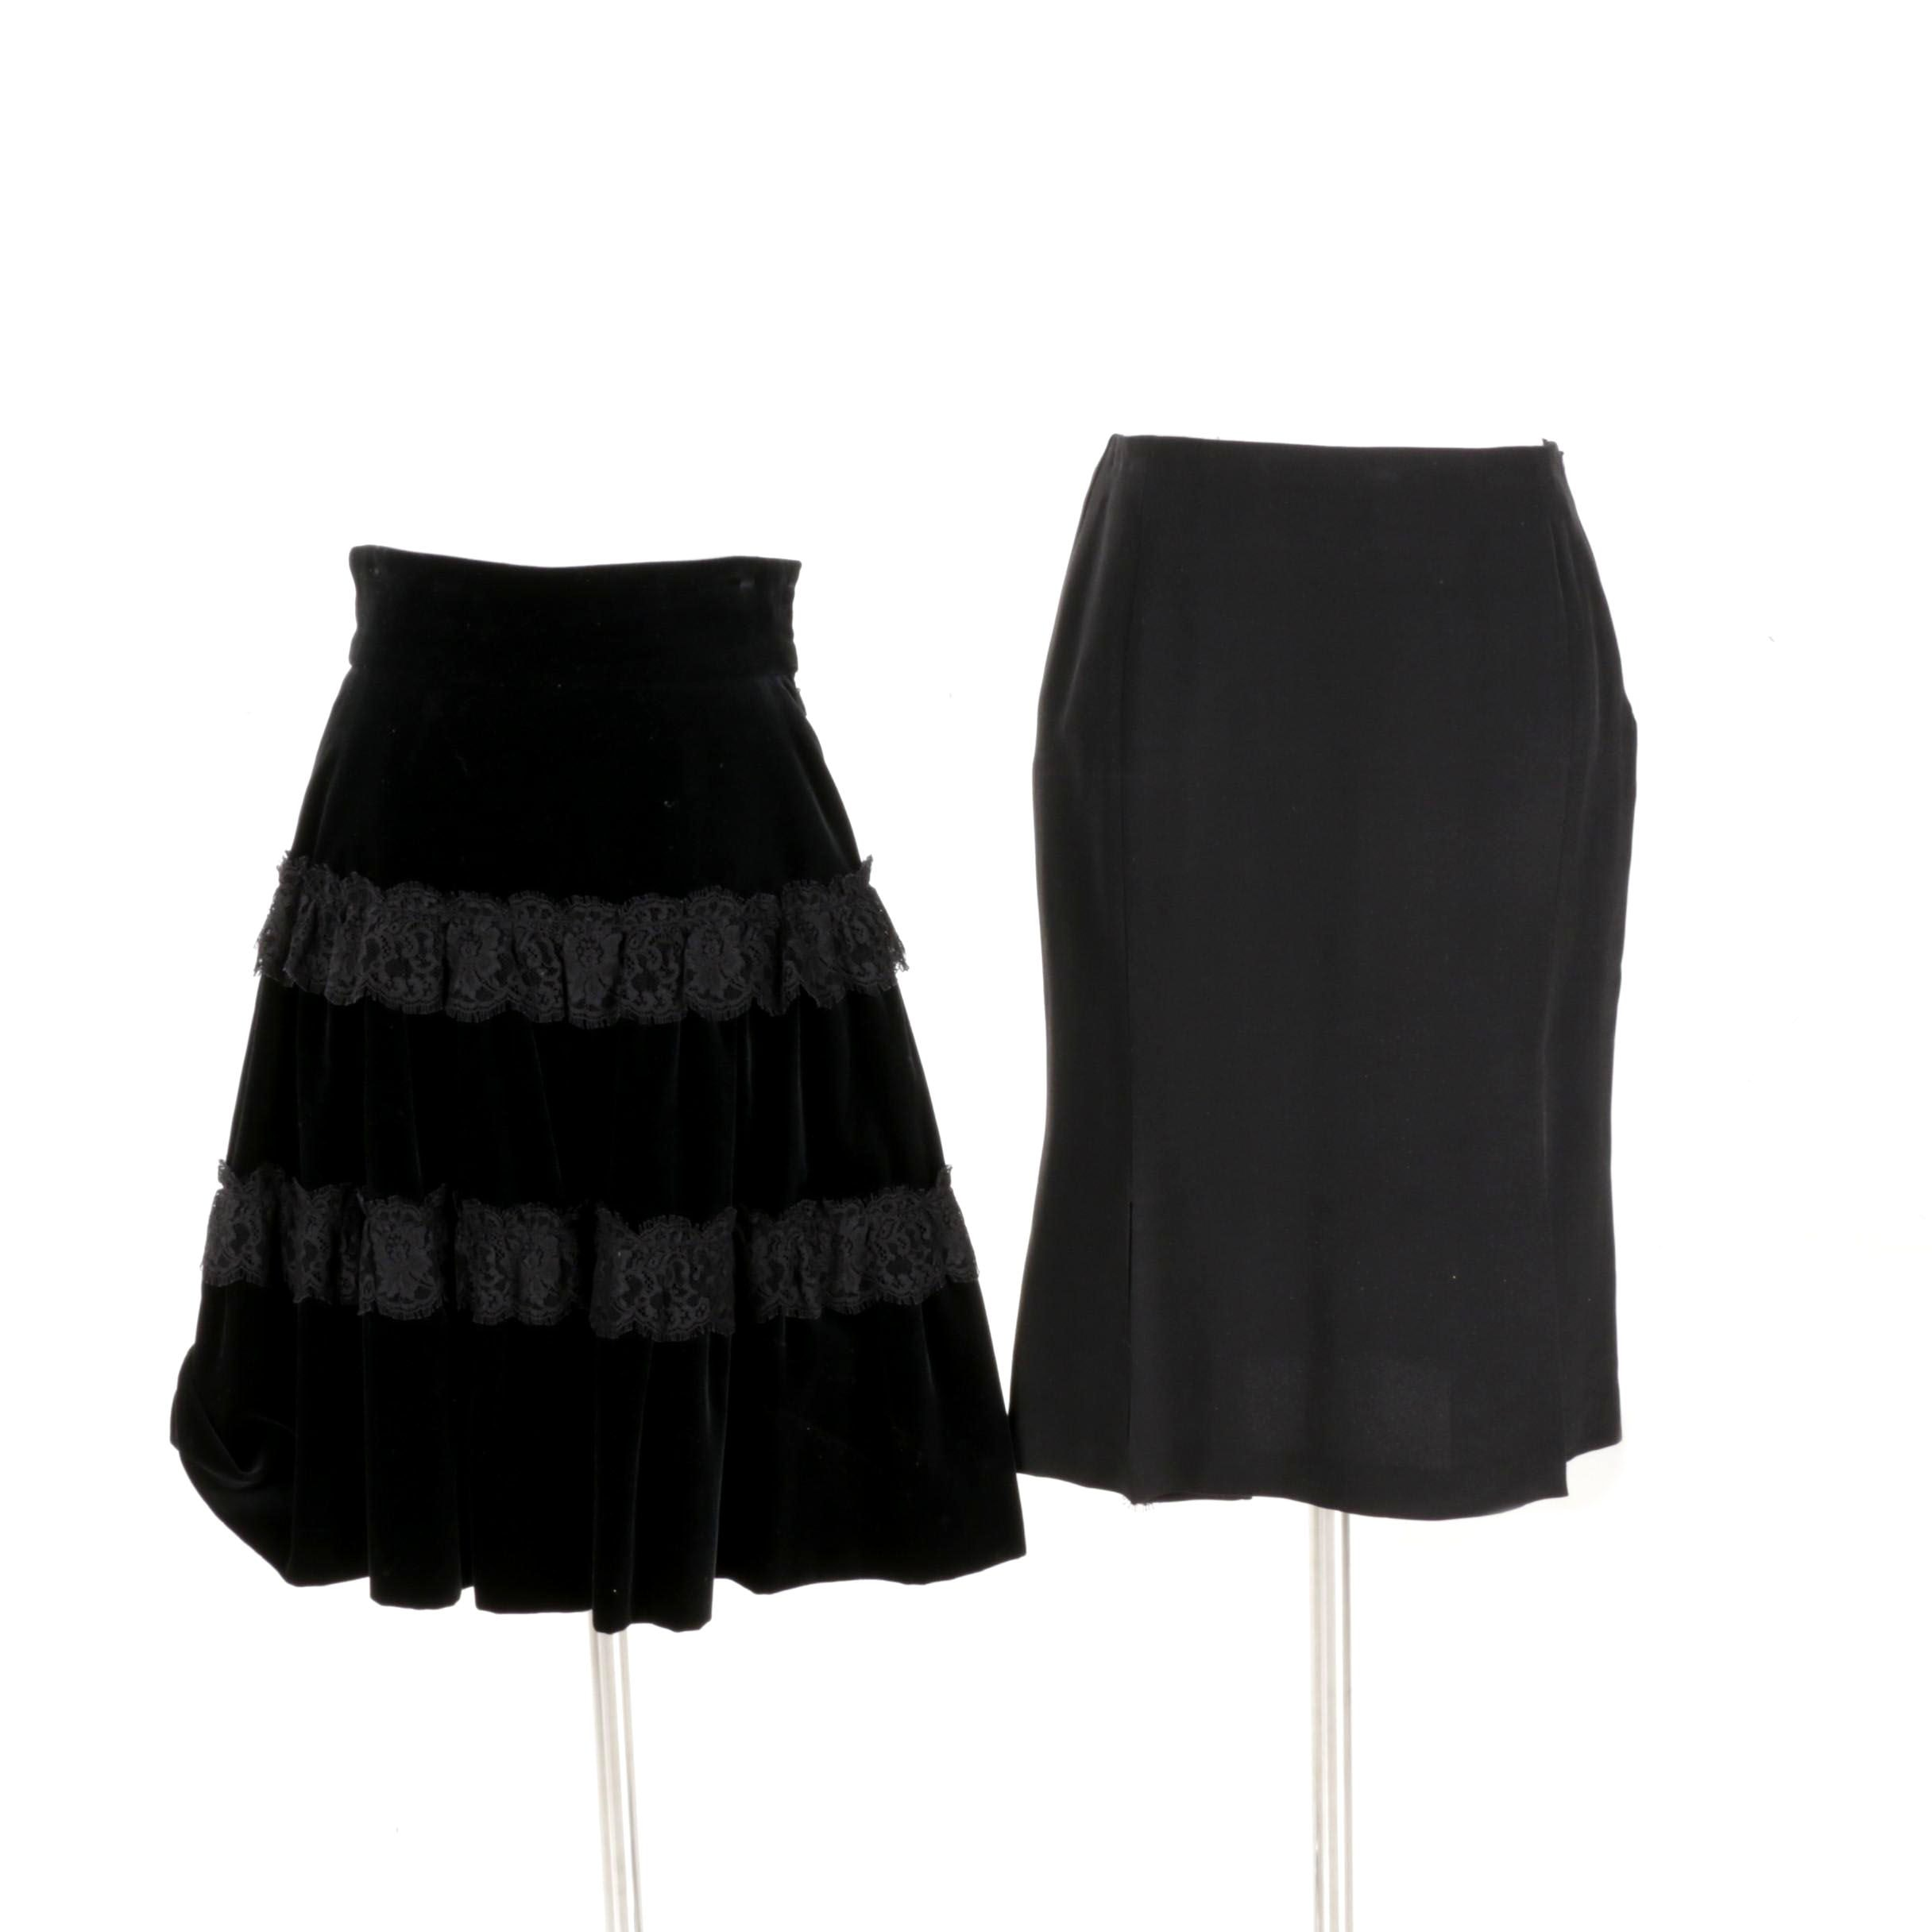 Valentino and Oscar de la Renta Black Skirts